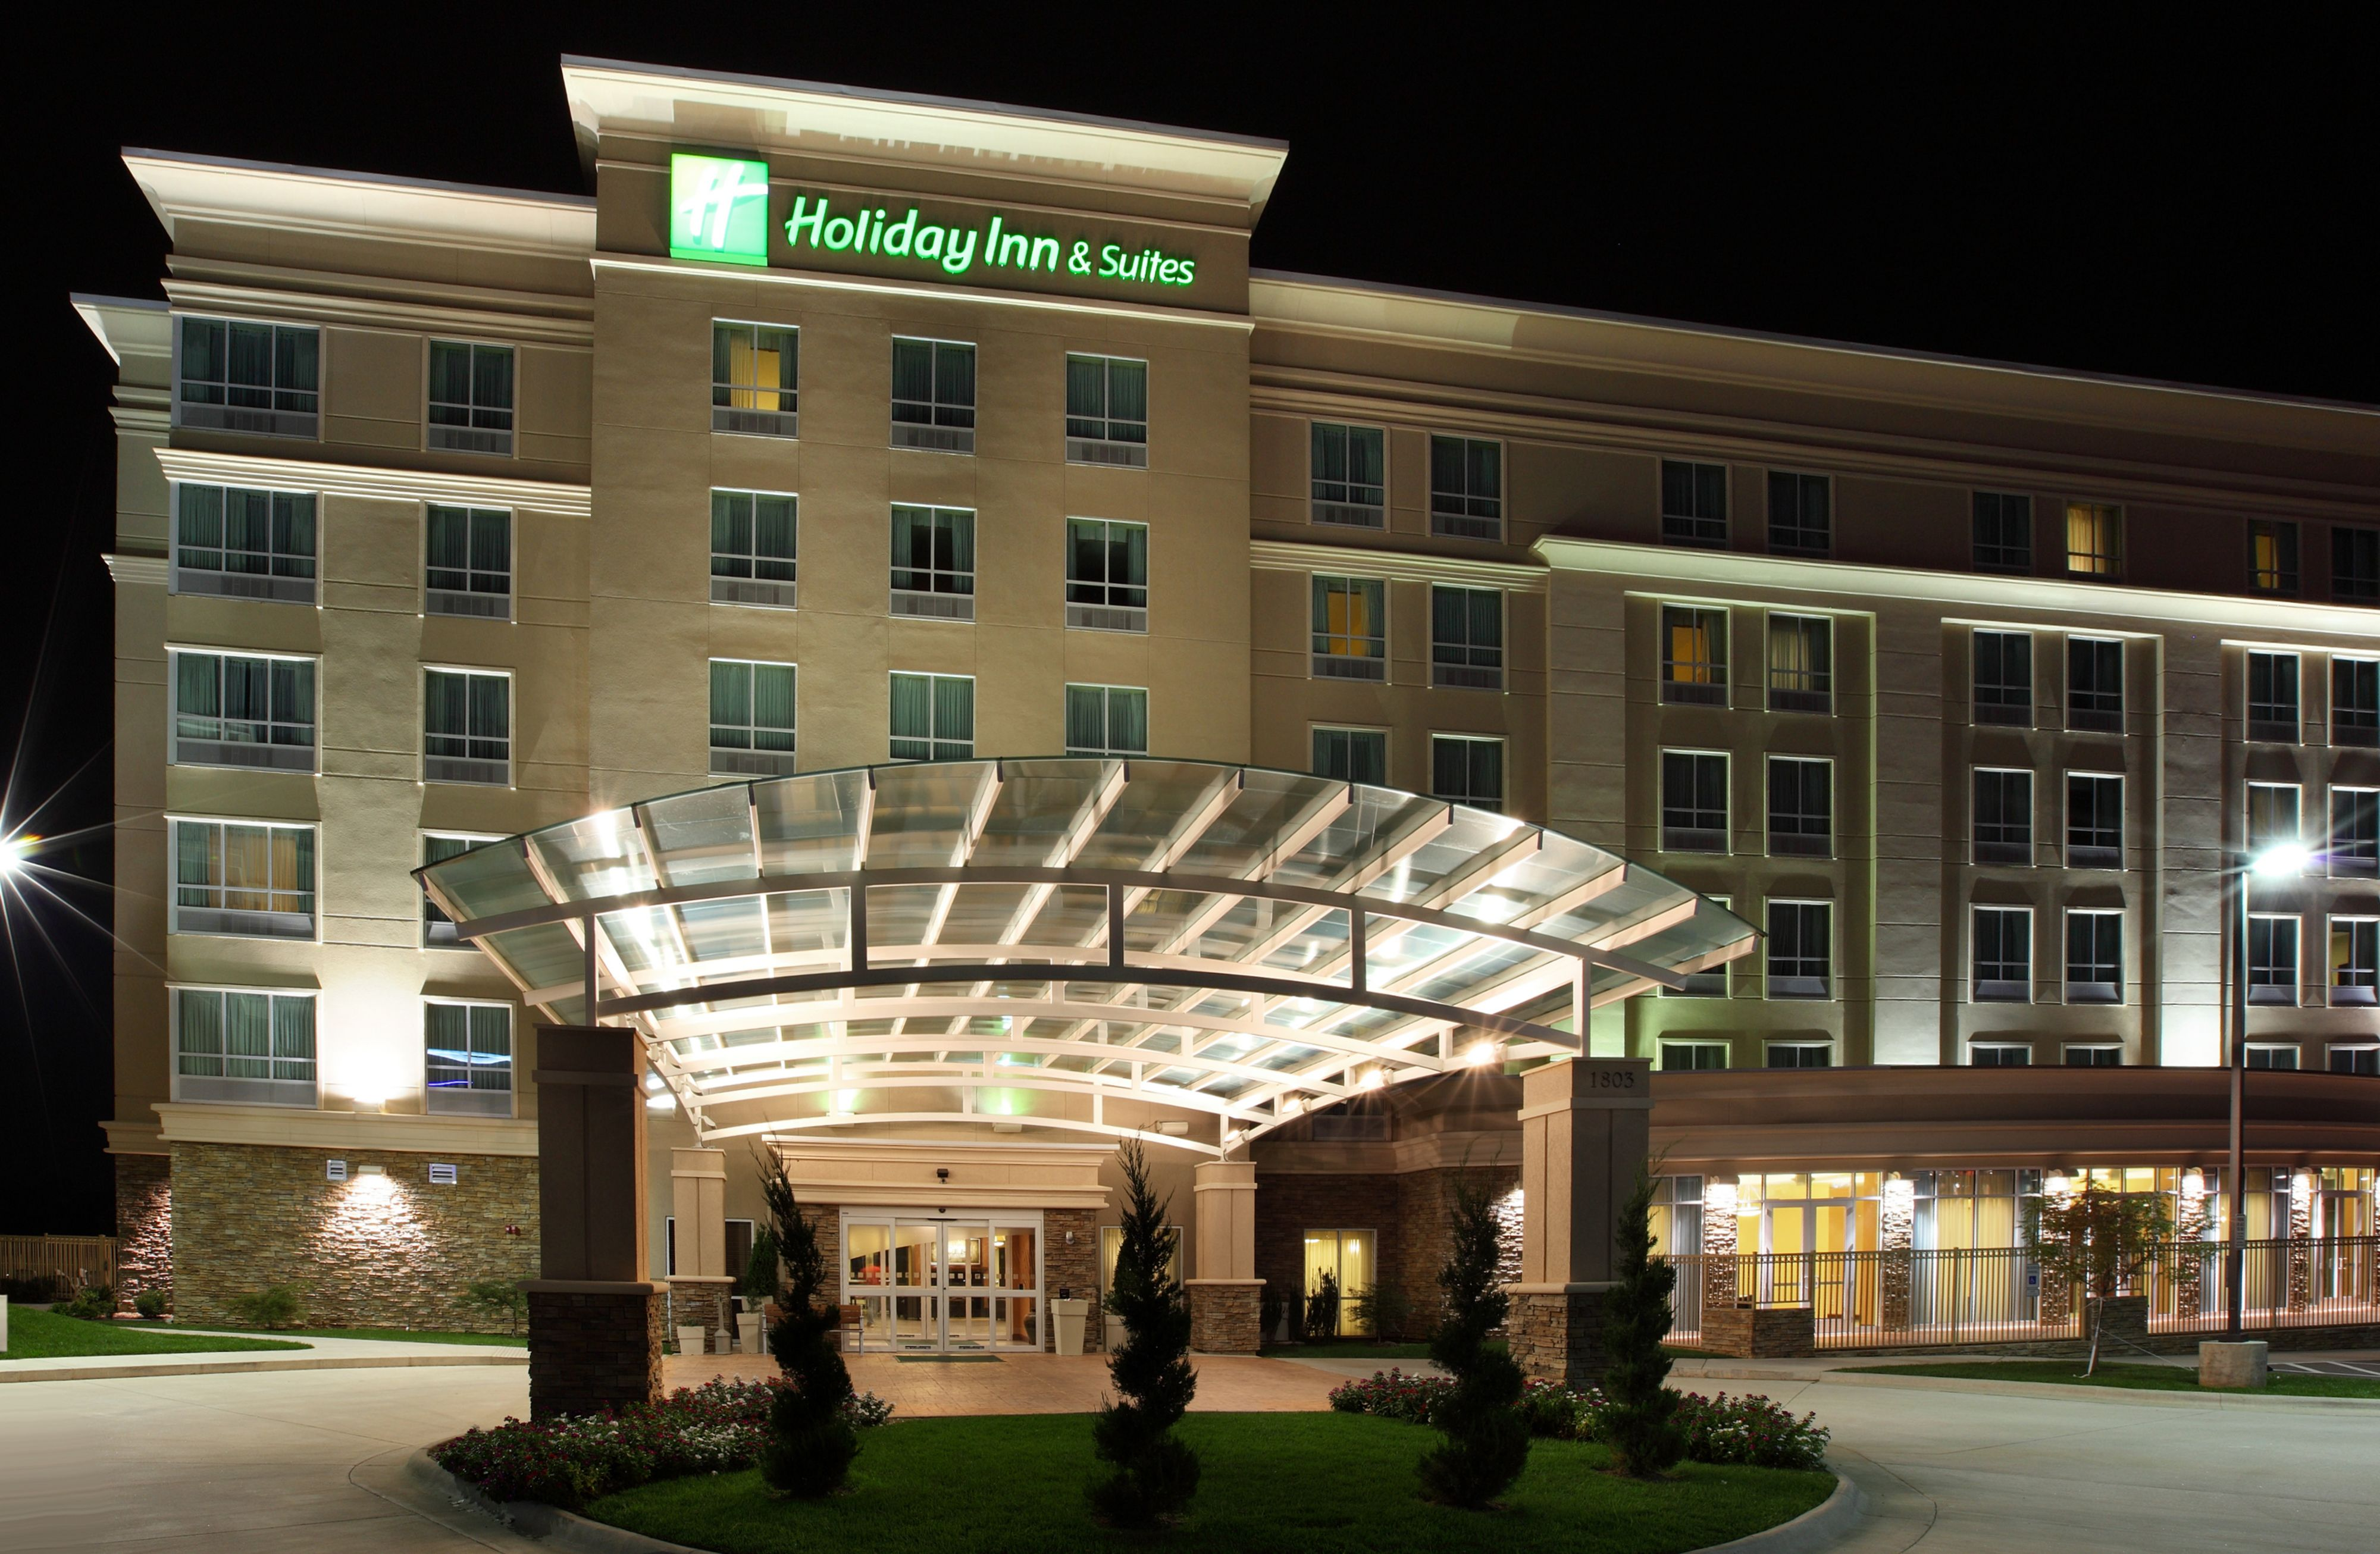 Holiday Inn Hotel Amp Suites Beckley In Beckley Wv Whitepages